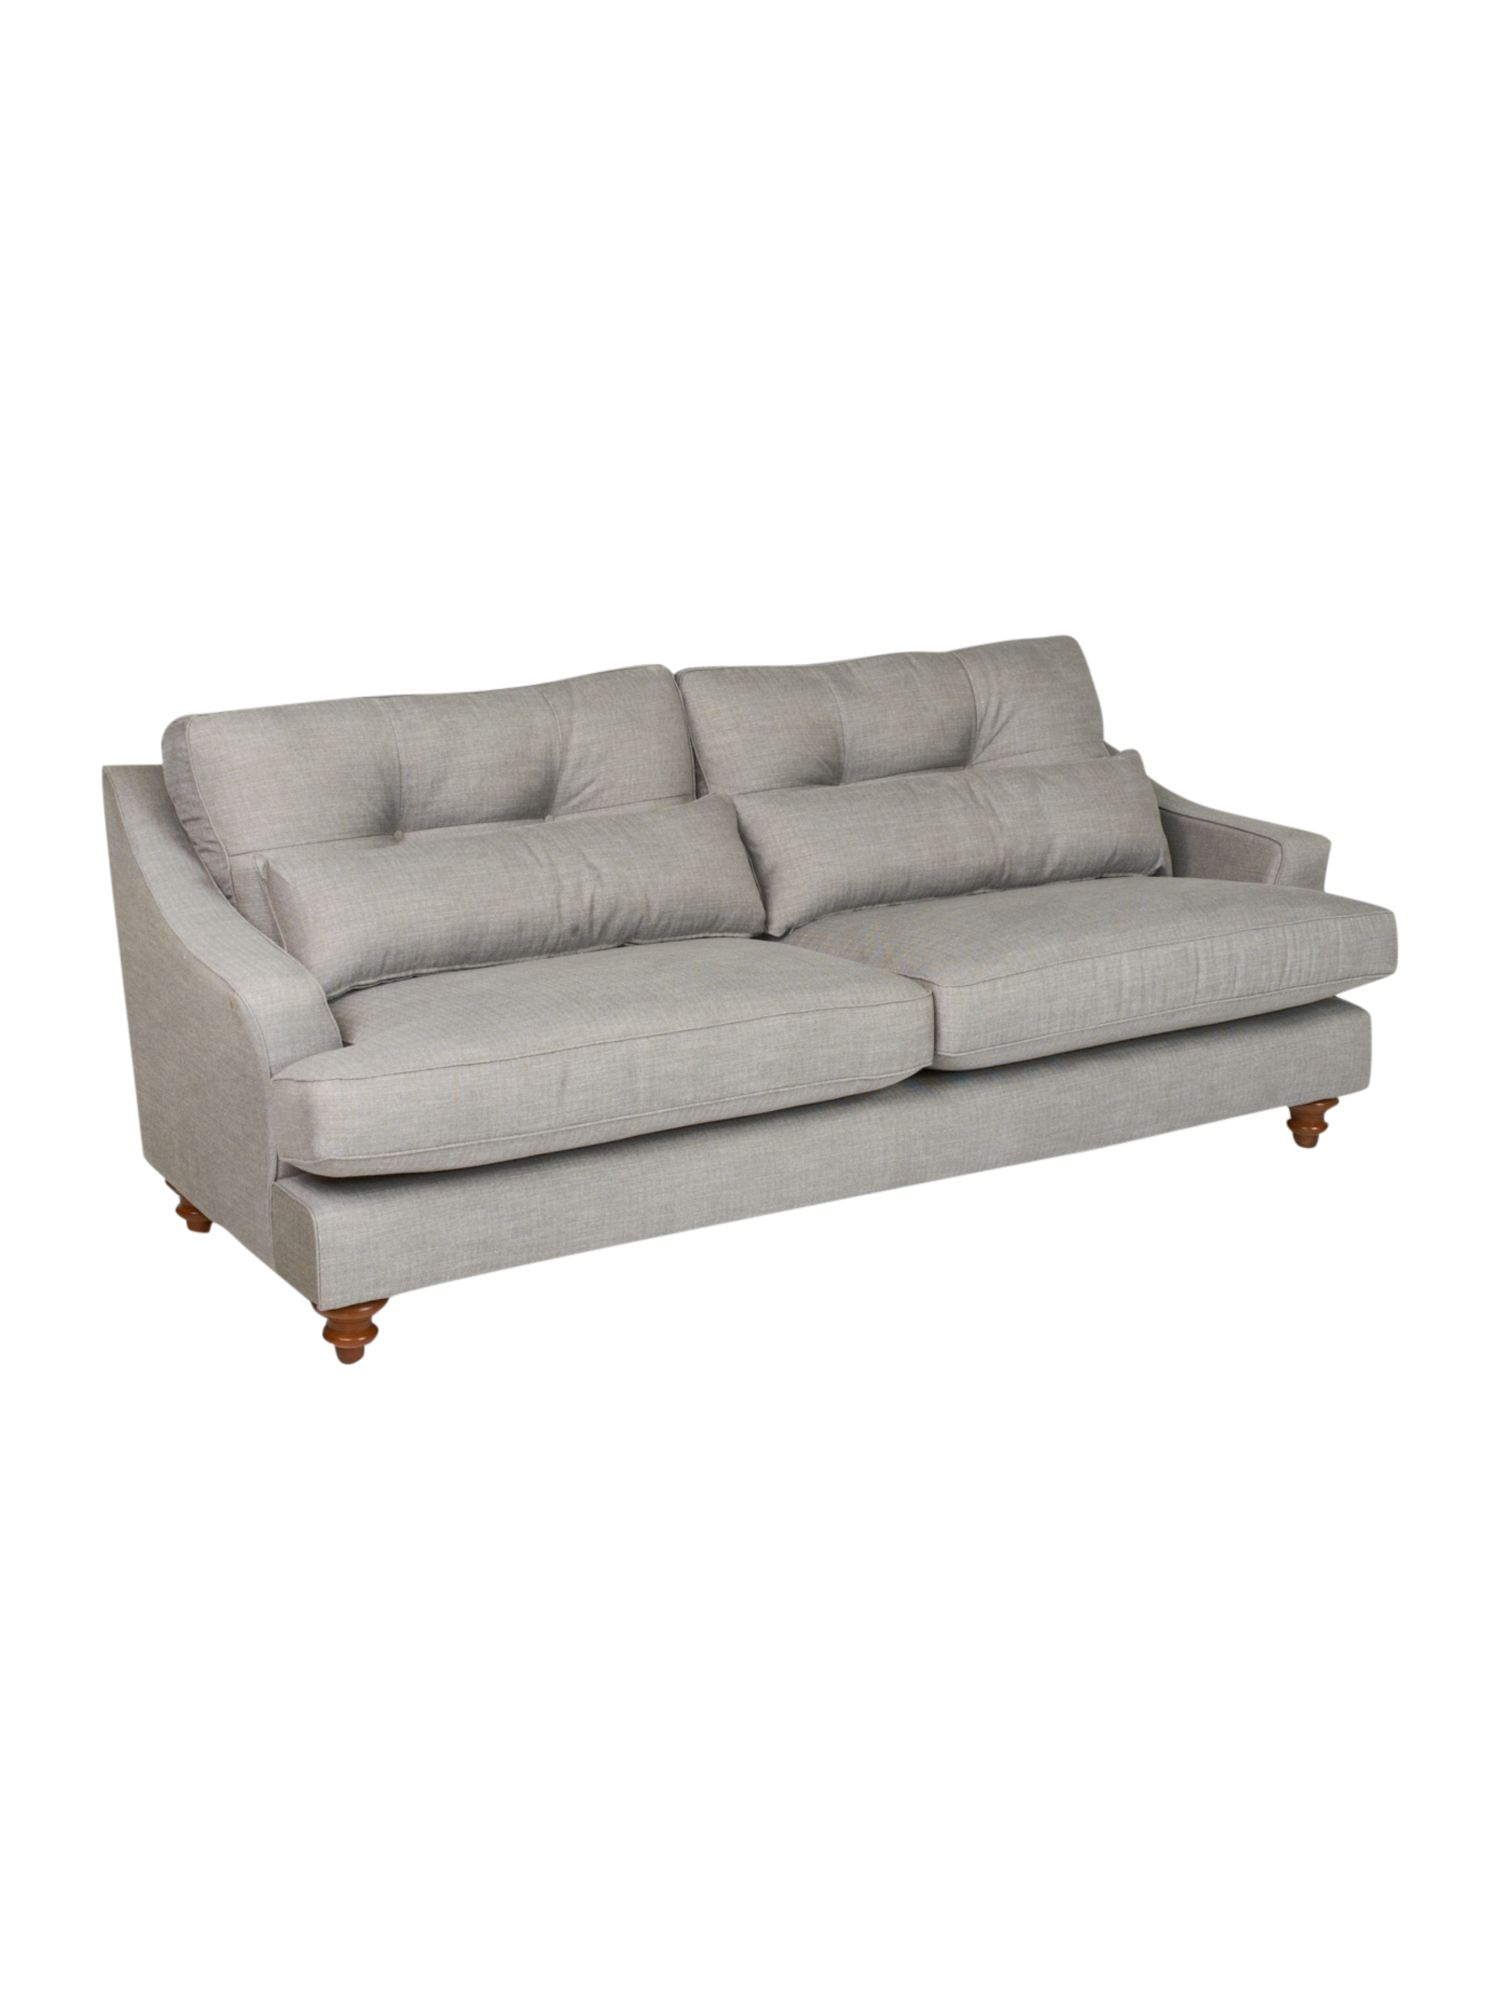 Portland large 3 seater sofa